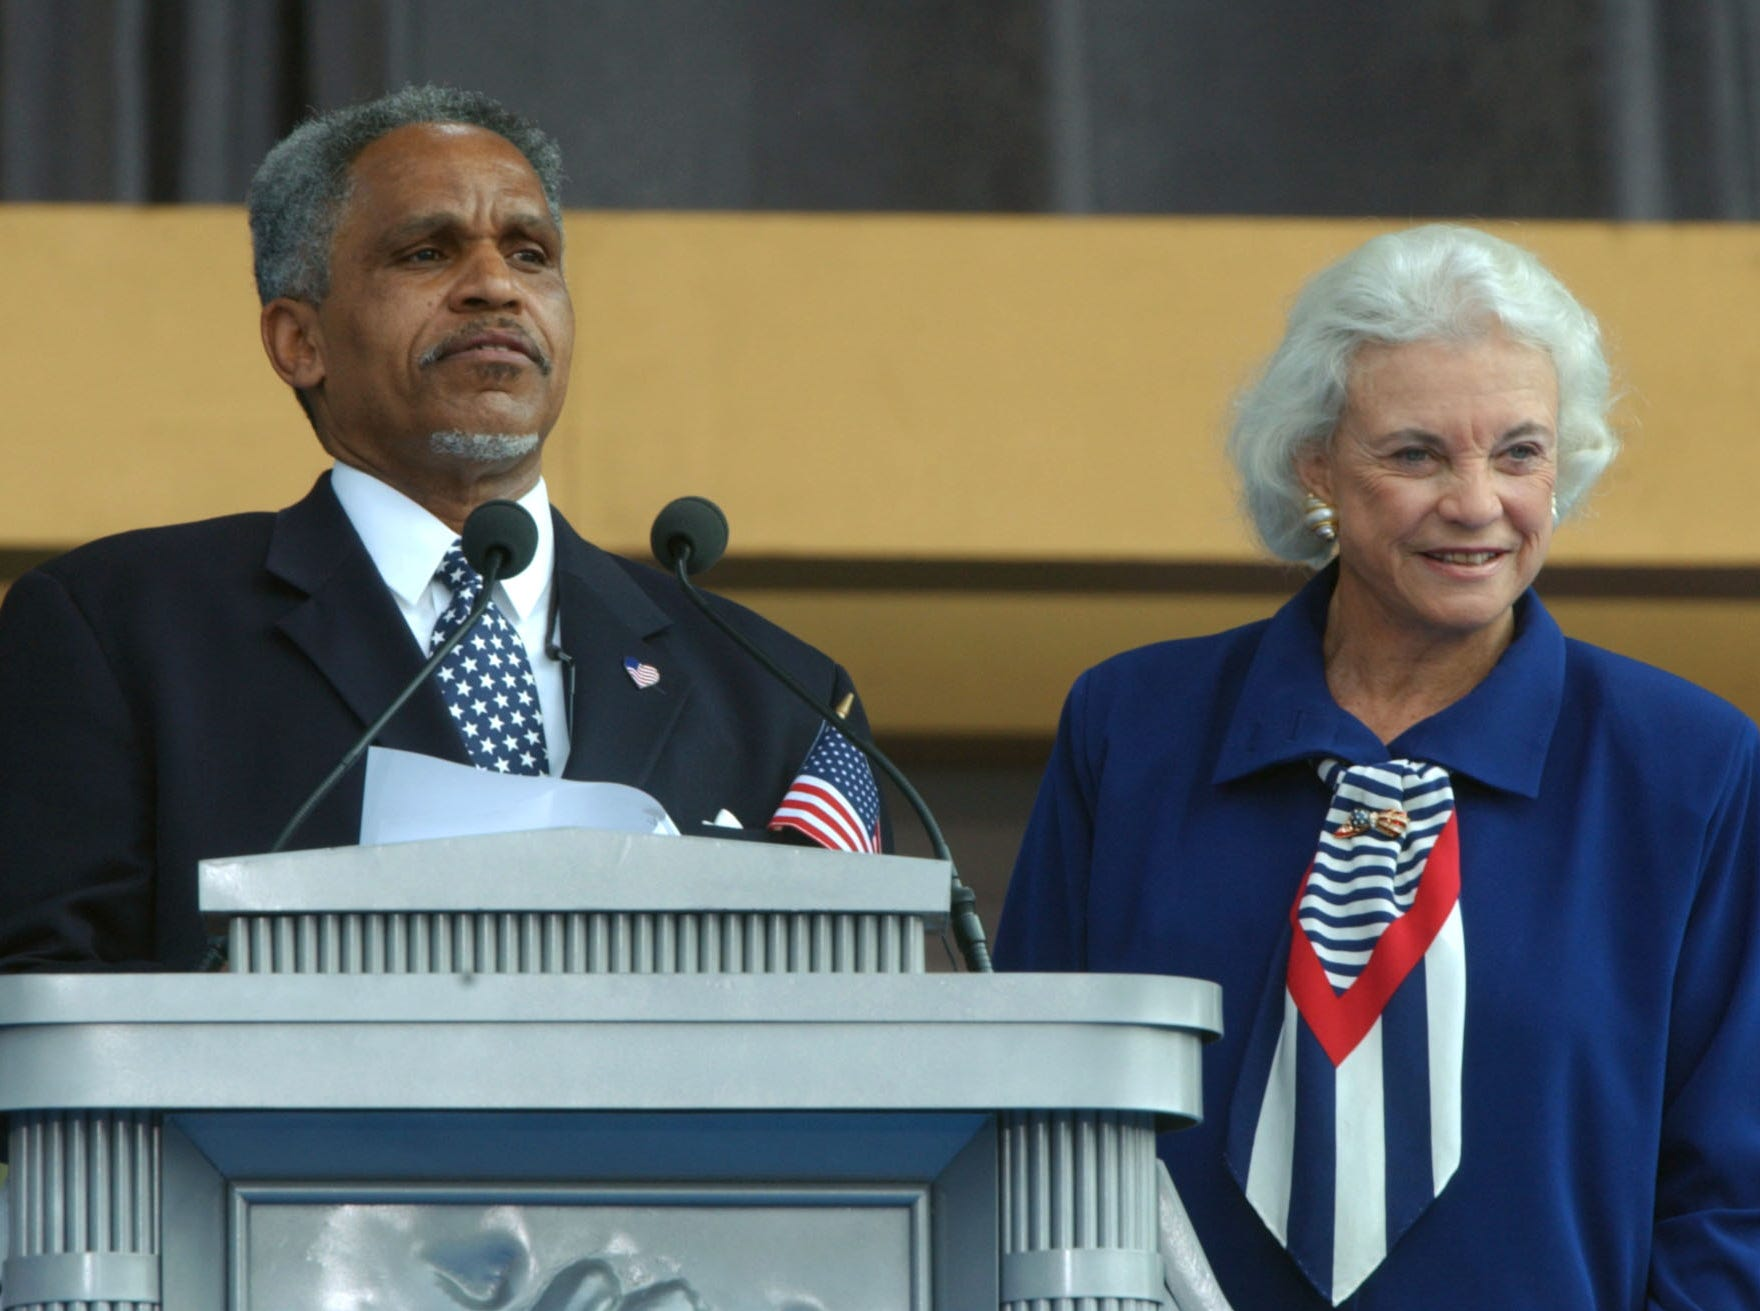 Mayor John Street, left, and  Supreme Court Justice Sandra Day O'Connor look out to the crowd at the opening of the National Constitution Center in Philadelphia, Friday, July 4, 2003. O'Connor received the city's Liberty Medal, an award honoring individuals whose actions represent the founding principles of the United States.